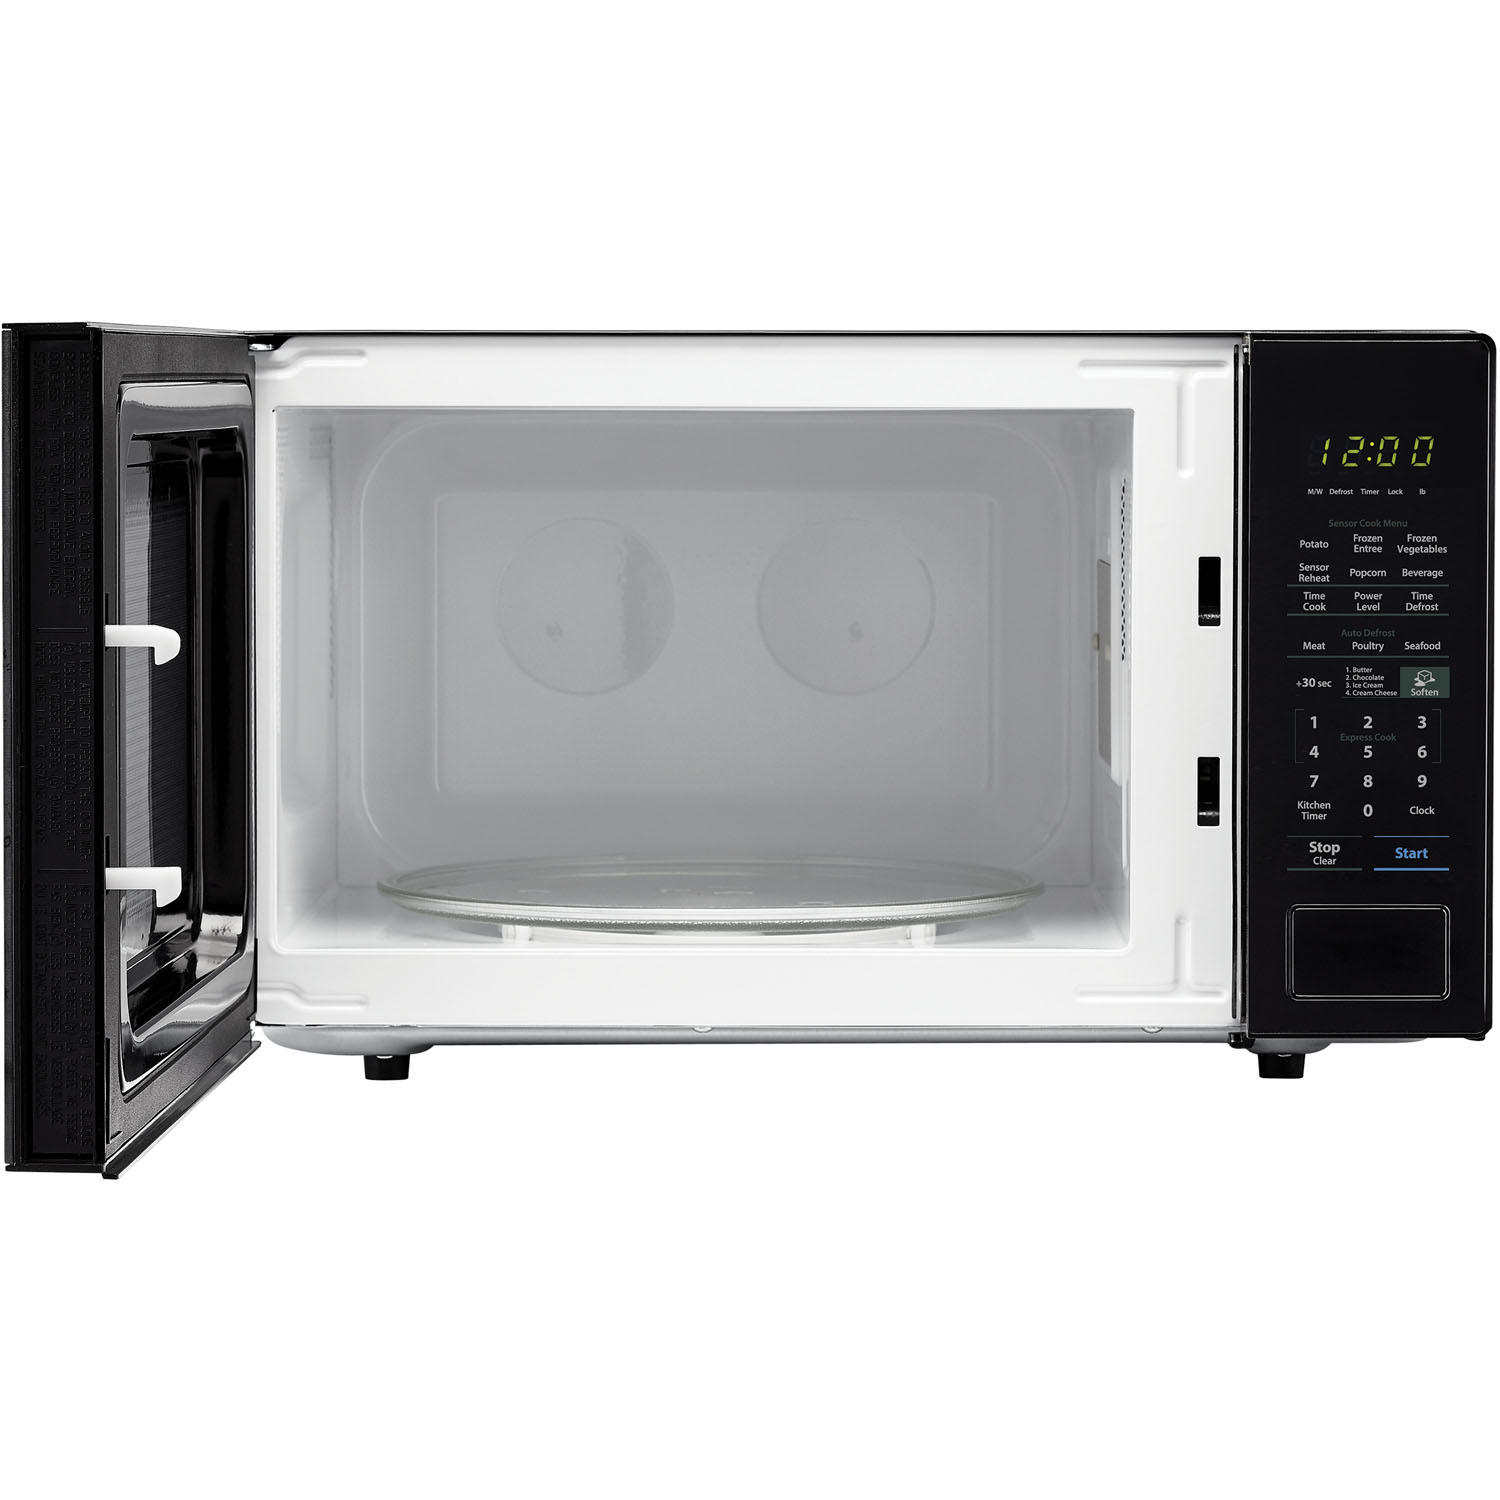 Sharp Carousel 1 4 Cu Ft 1000w Countertop Microwave Oven In Black Smc1441cb